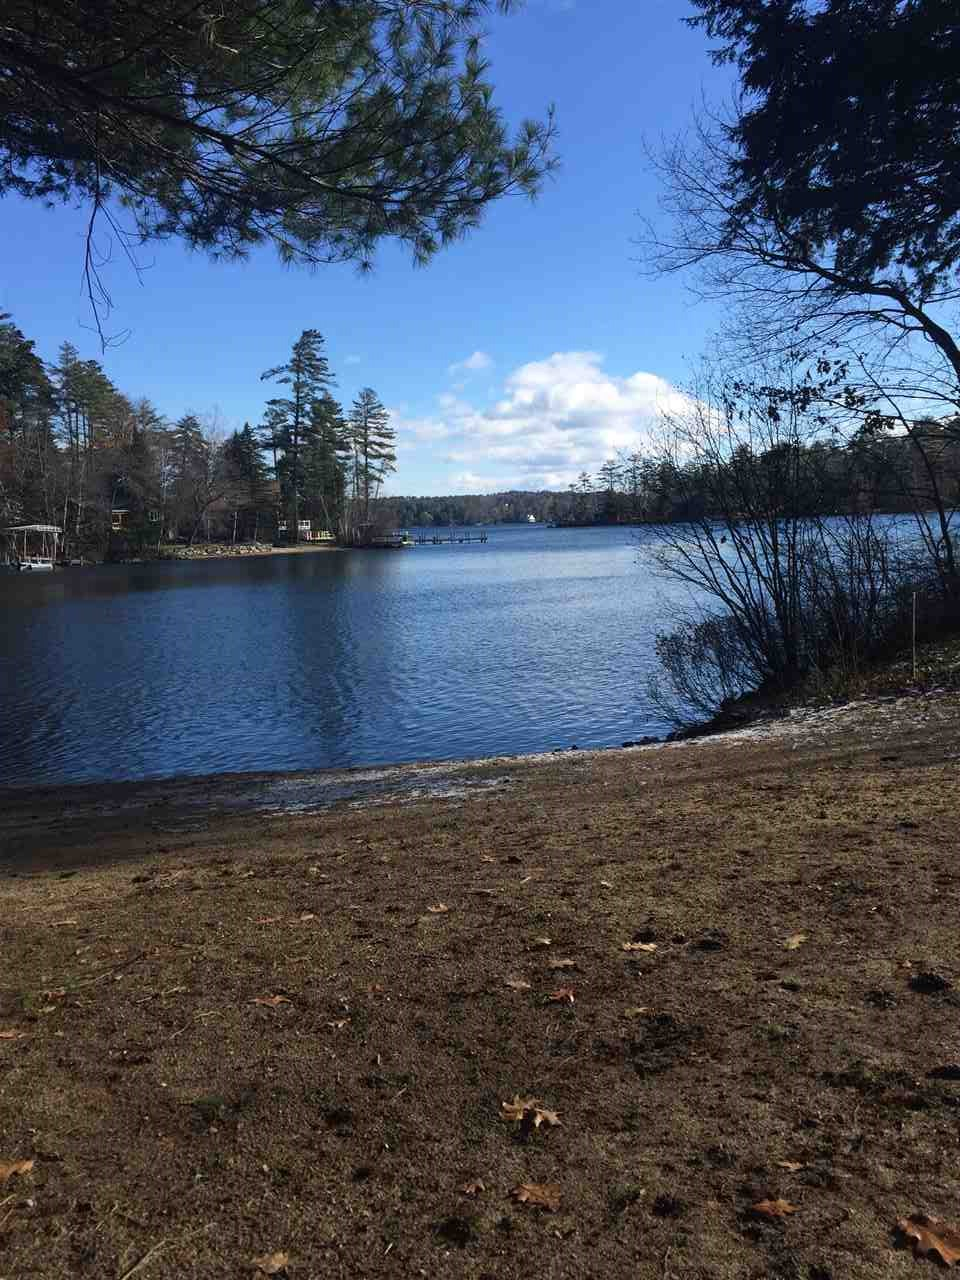 Moultonborough NH Land mls no. 4636447 with 180 ft. Owned waterfront